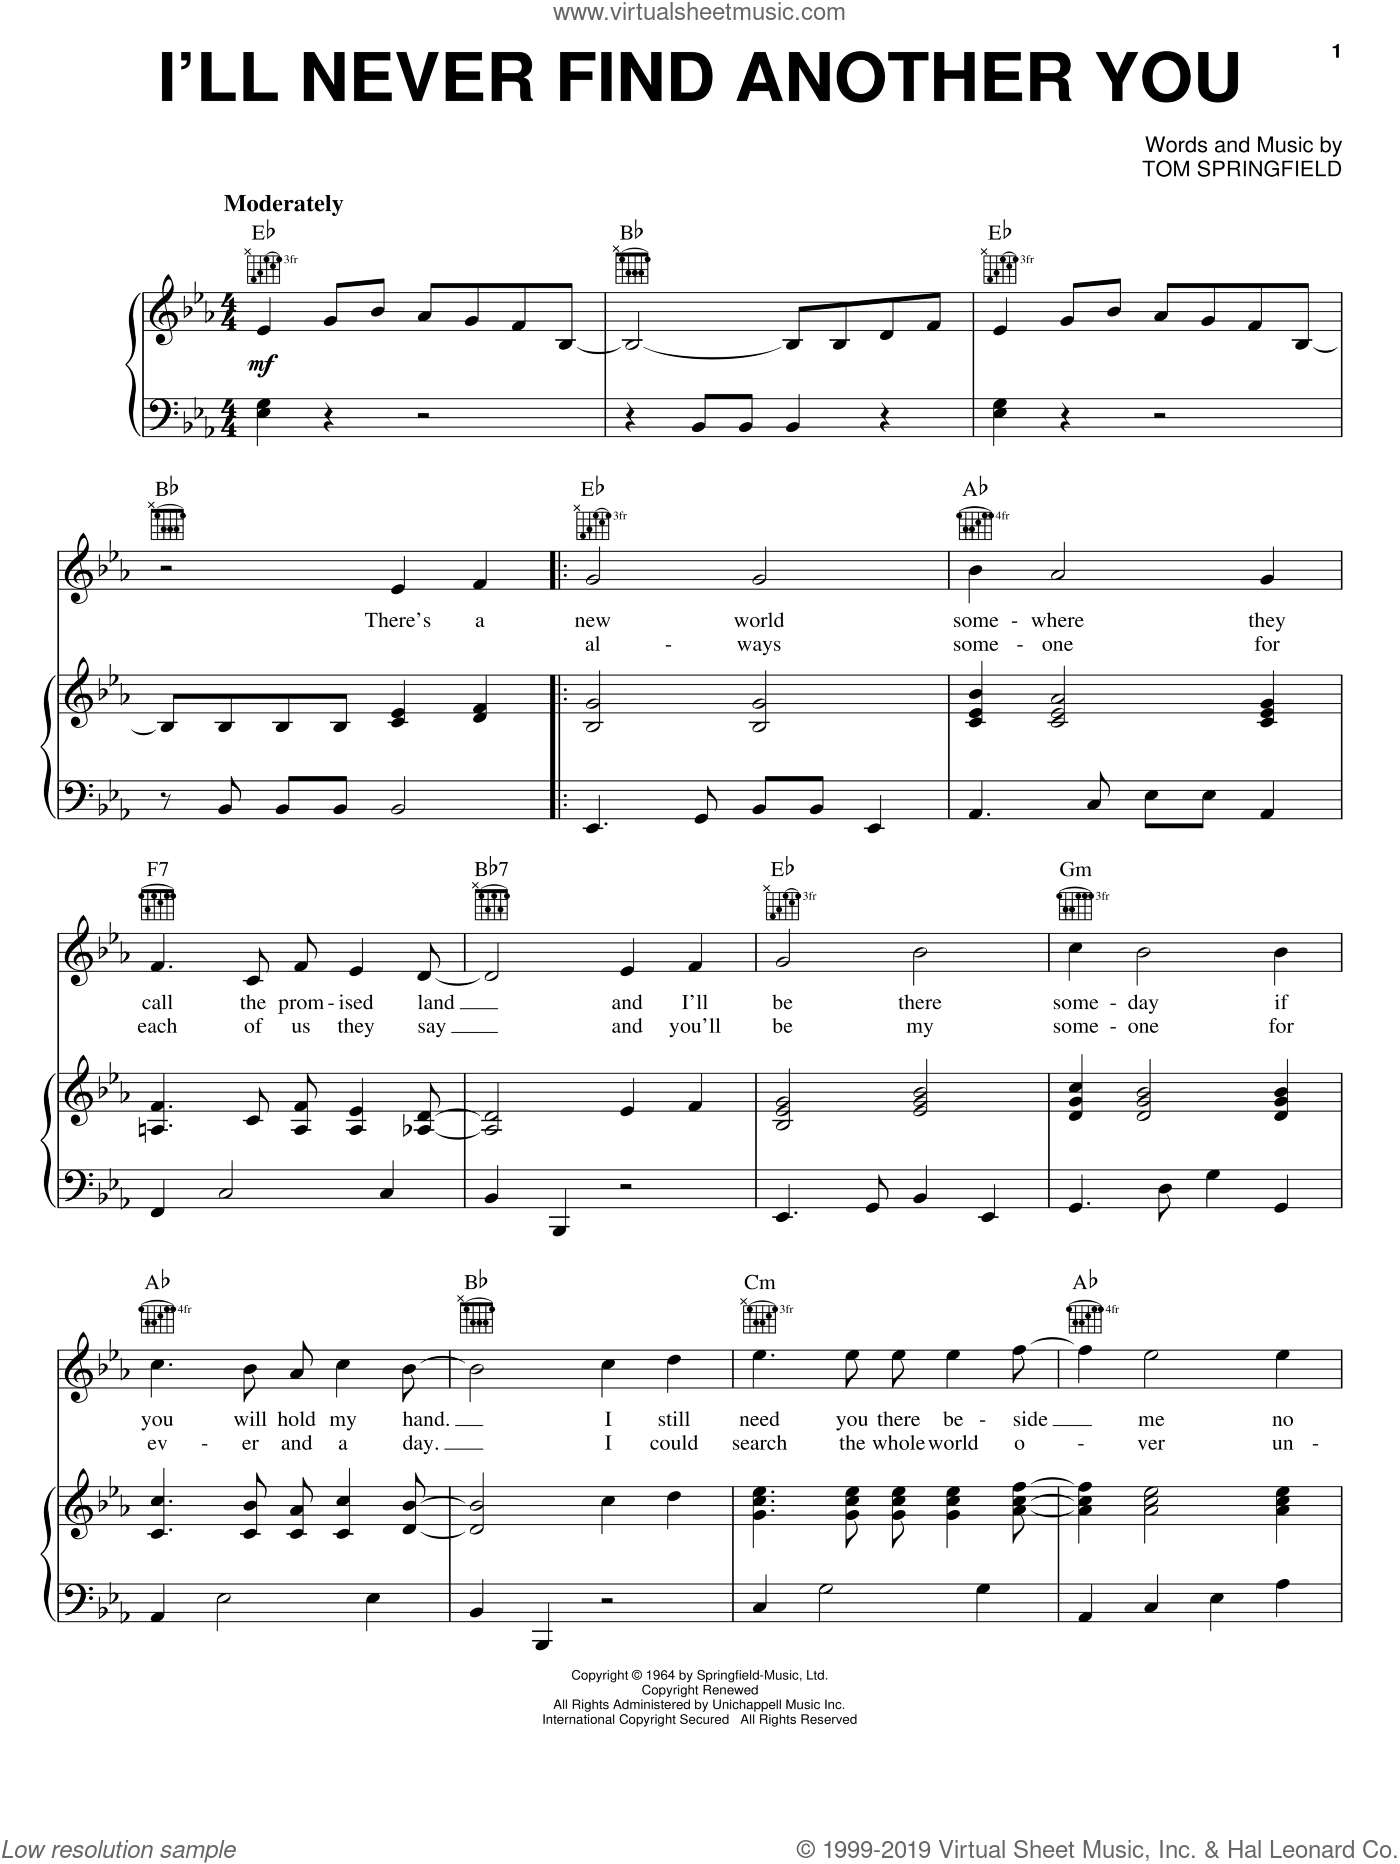 I'll Never Find Another You sheet music for voice, piano or guitar by The Seekers, Sonny James and Tom Springfield, intermediate skill level